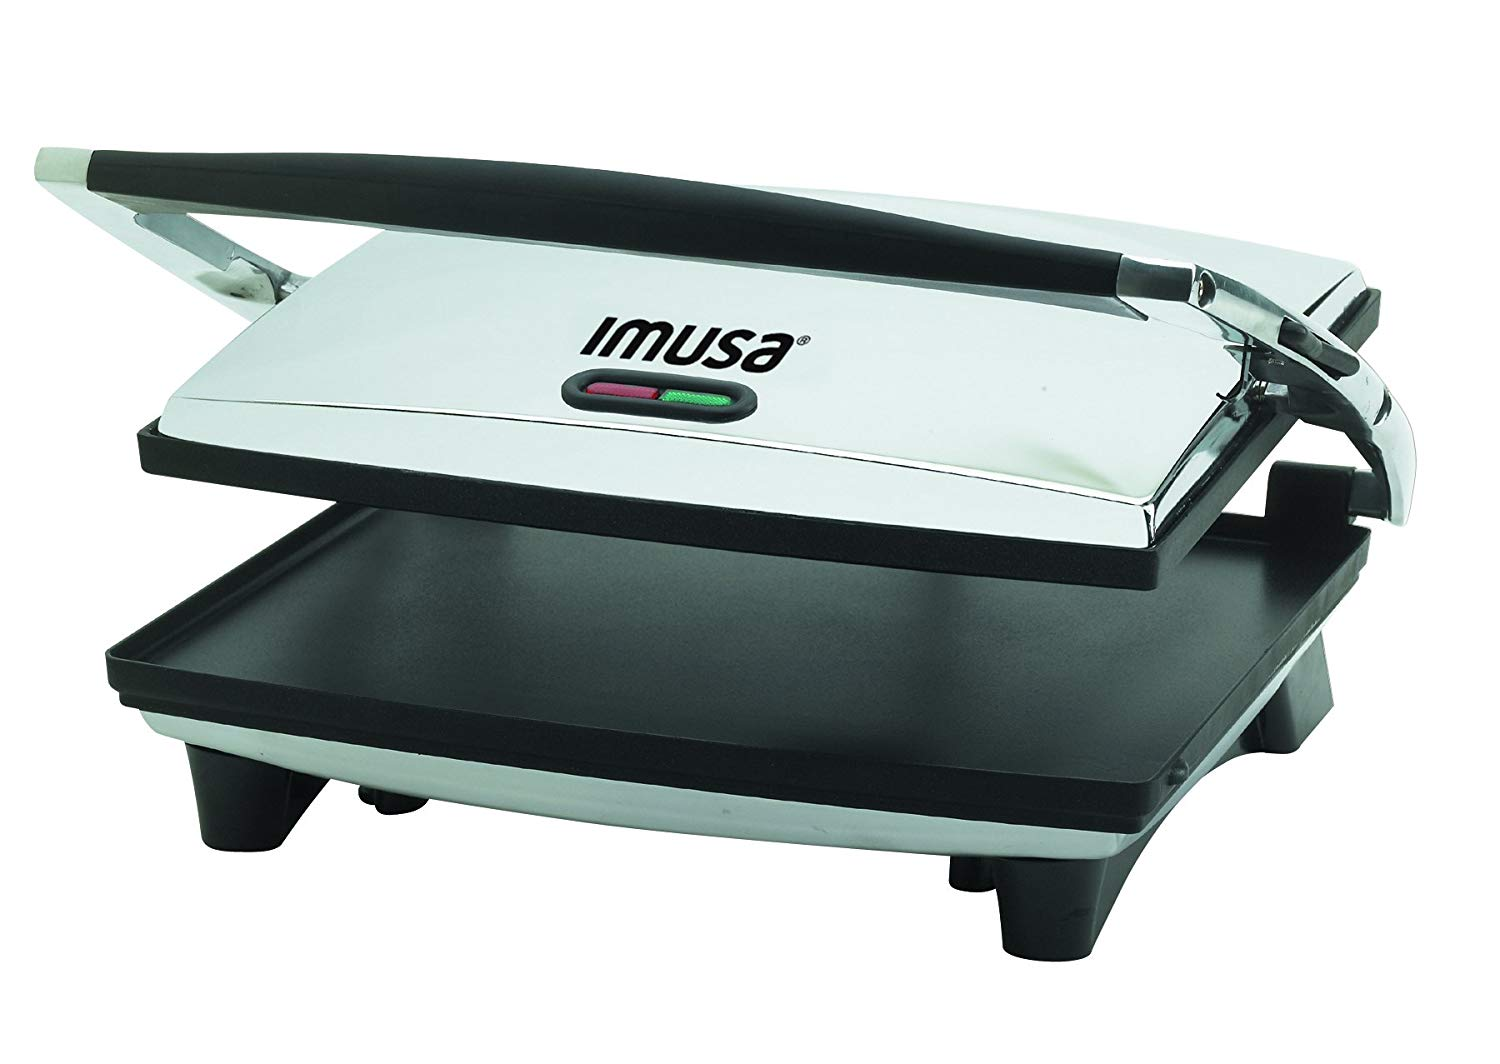 Imusa usa gau-80102 large electric panini press